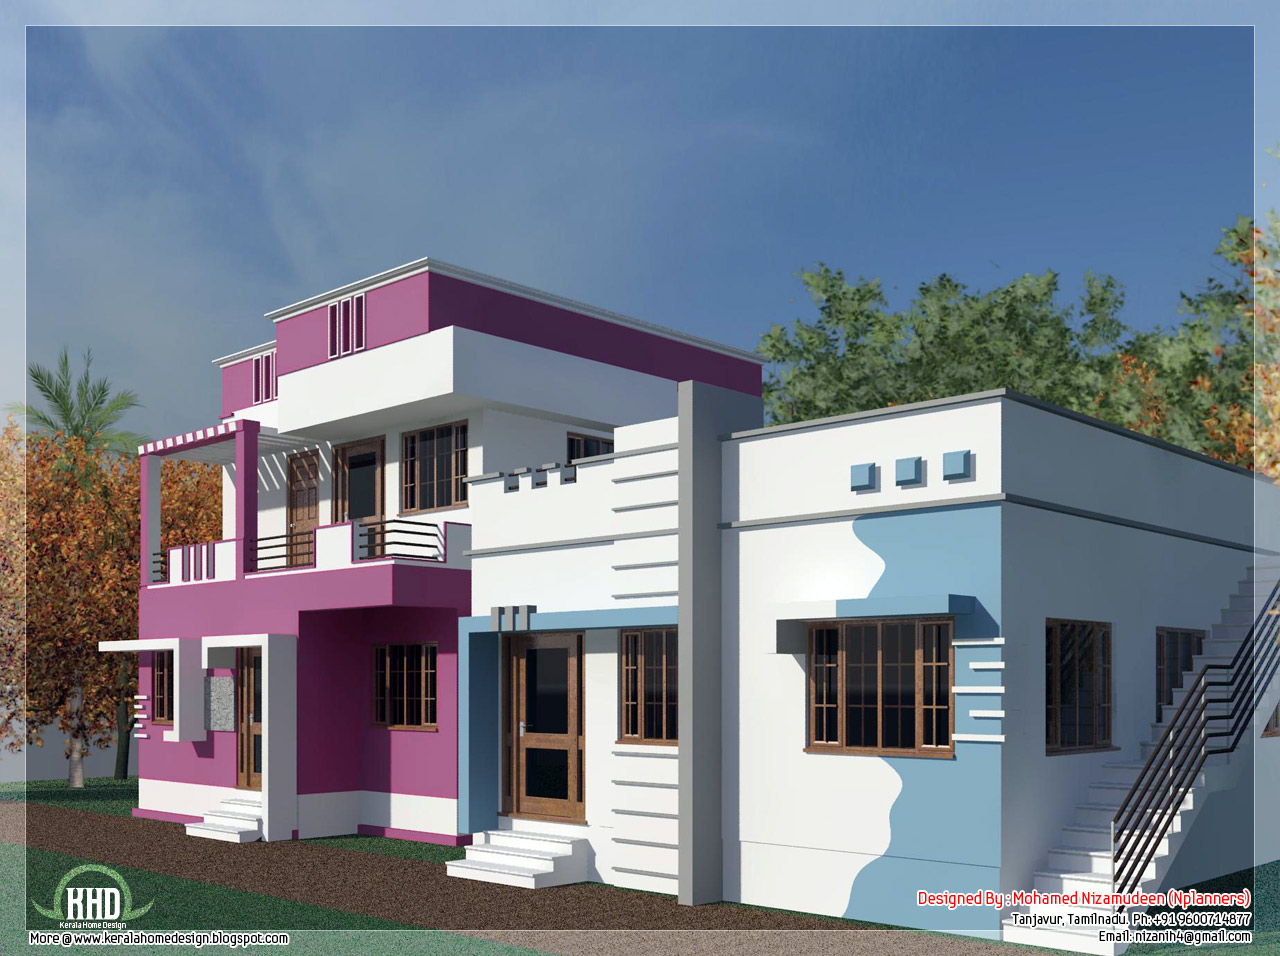 Tamilnadu model home design in 3000 kerala home for New model home design